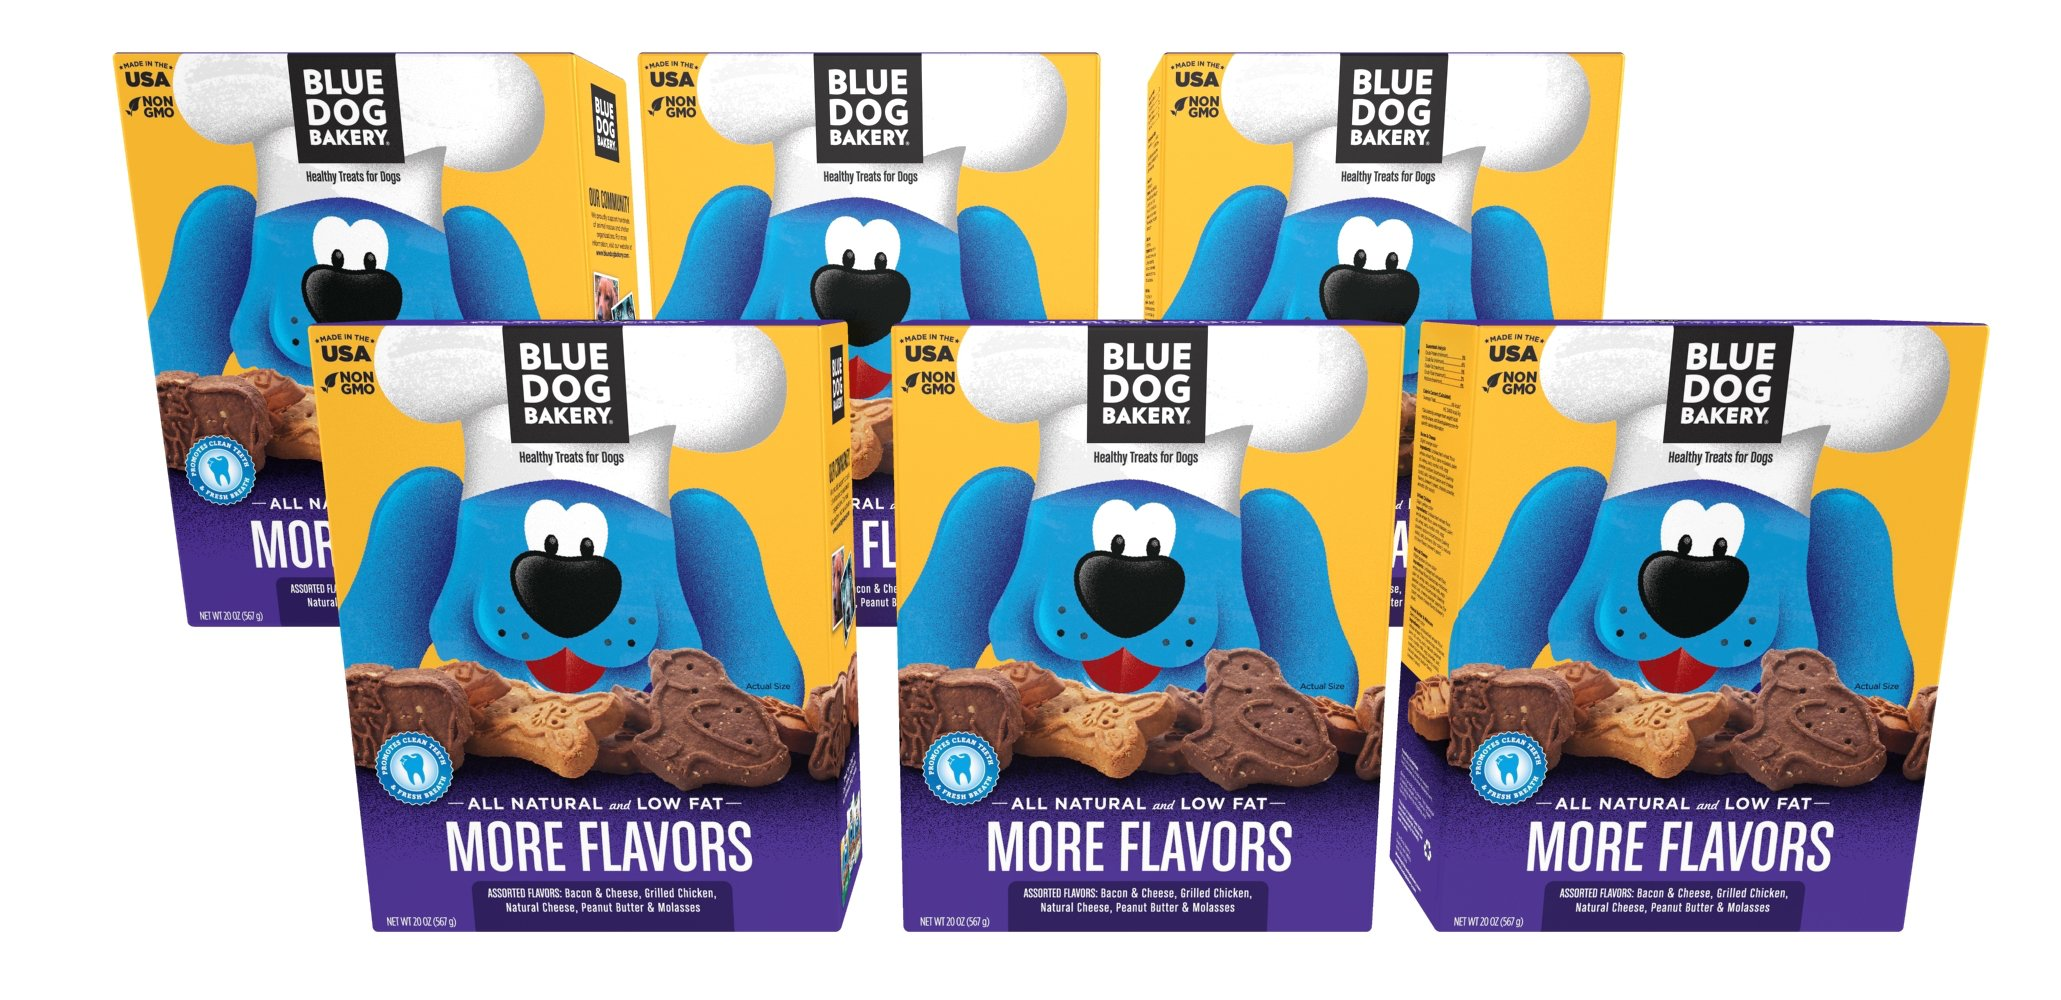 Blue Dog Bakery | Dog Treats | All-Natural | More Flavors